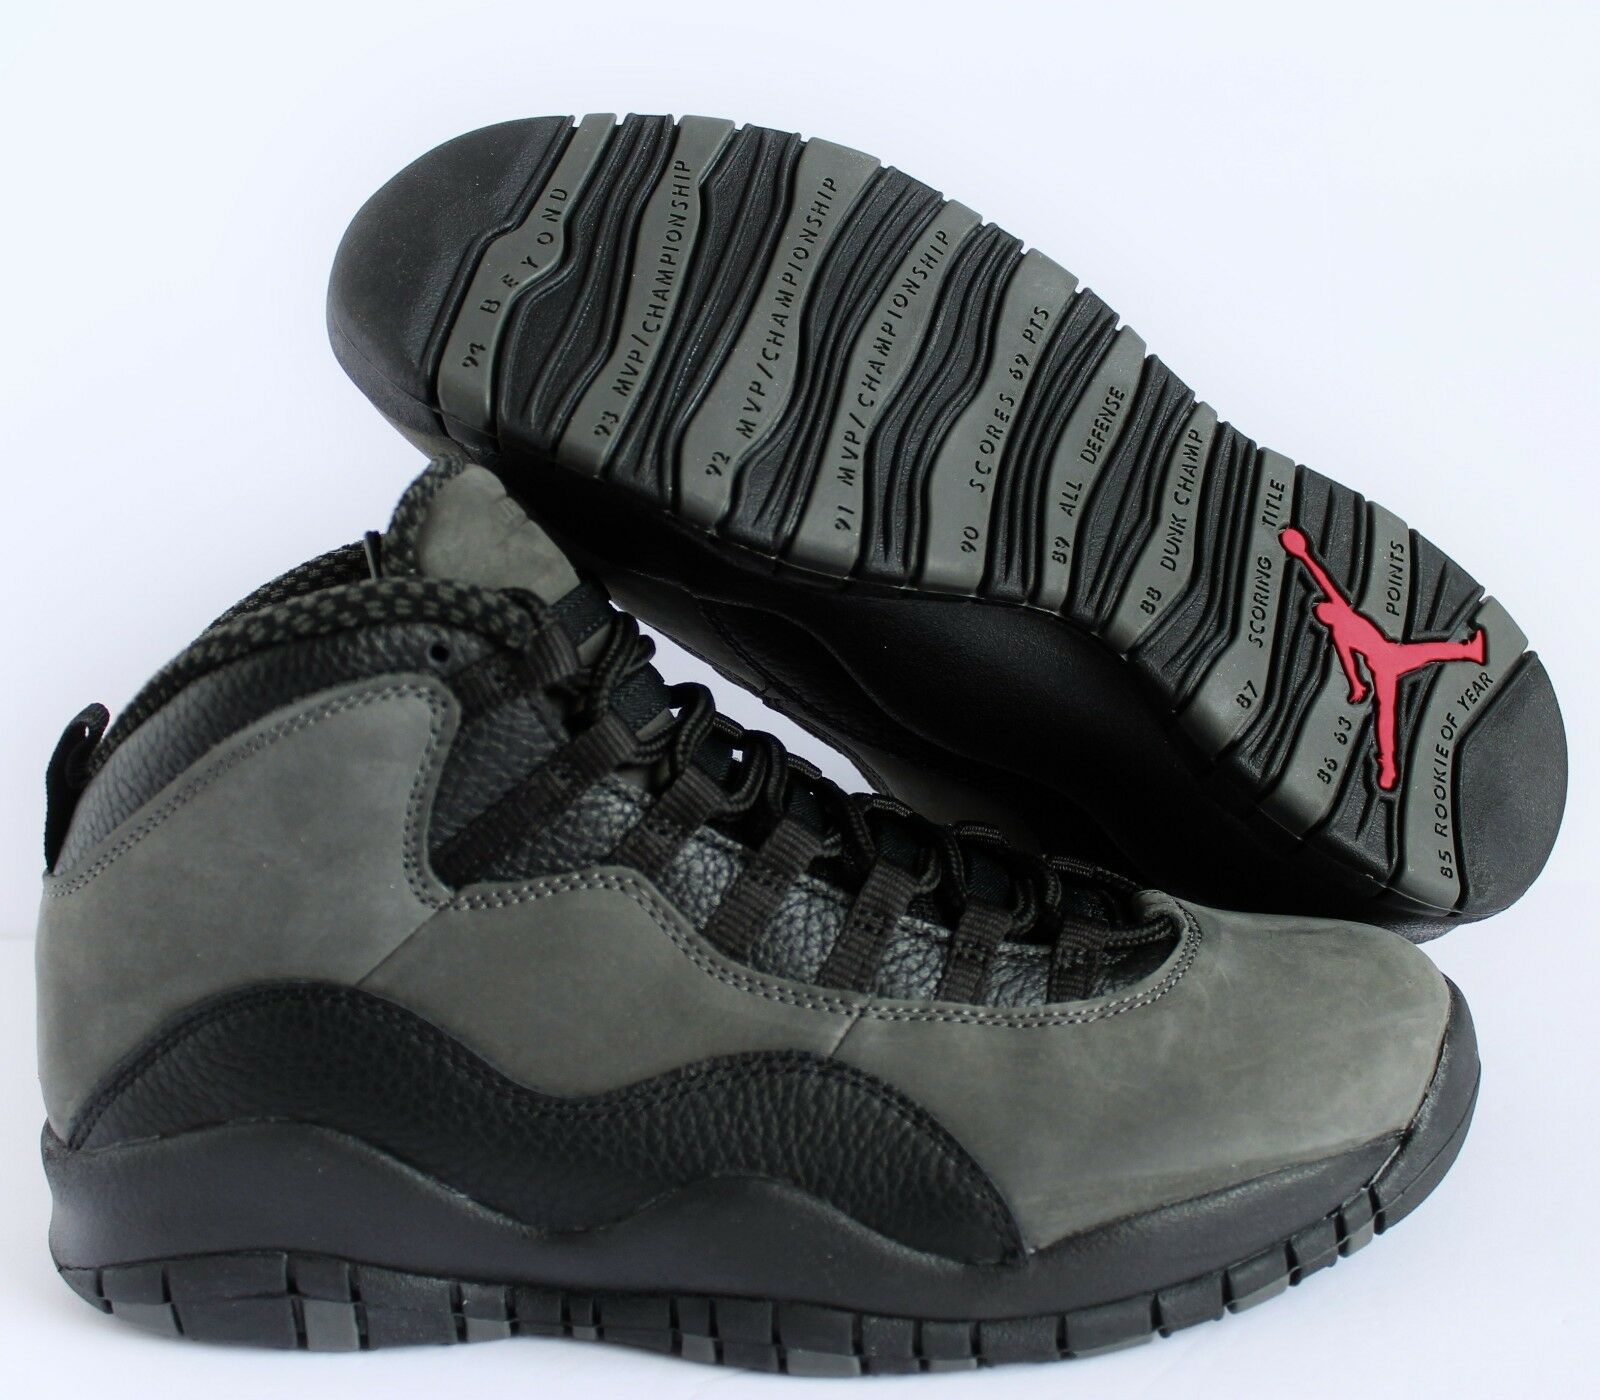 NIKE AIR JORDAN 10 RETRO DARK SHADOW-TRUE RED-BLACK Price reduction New shoes for men and women, limited time discount